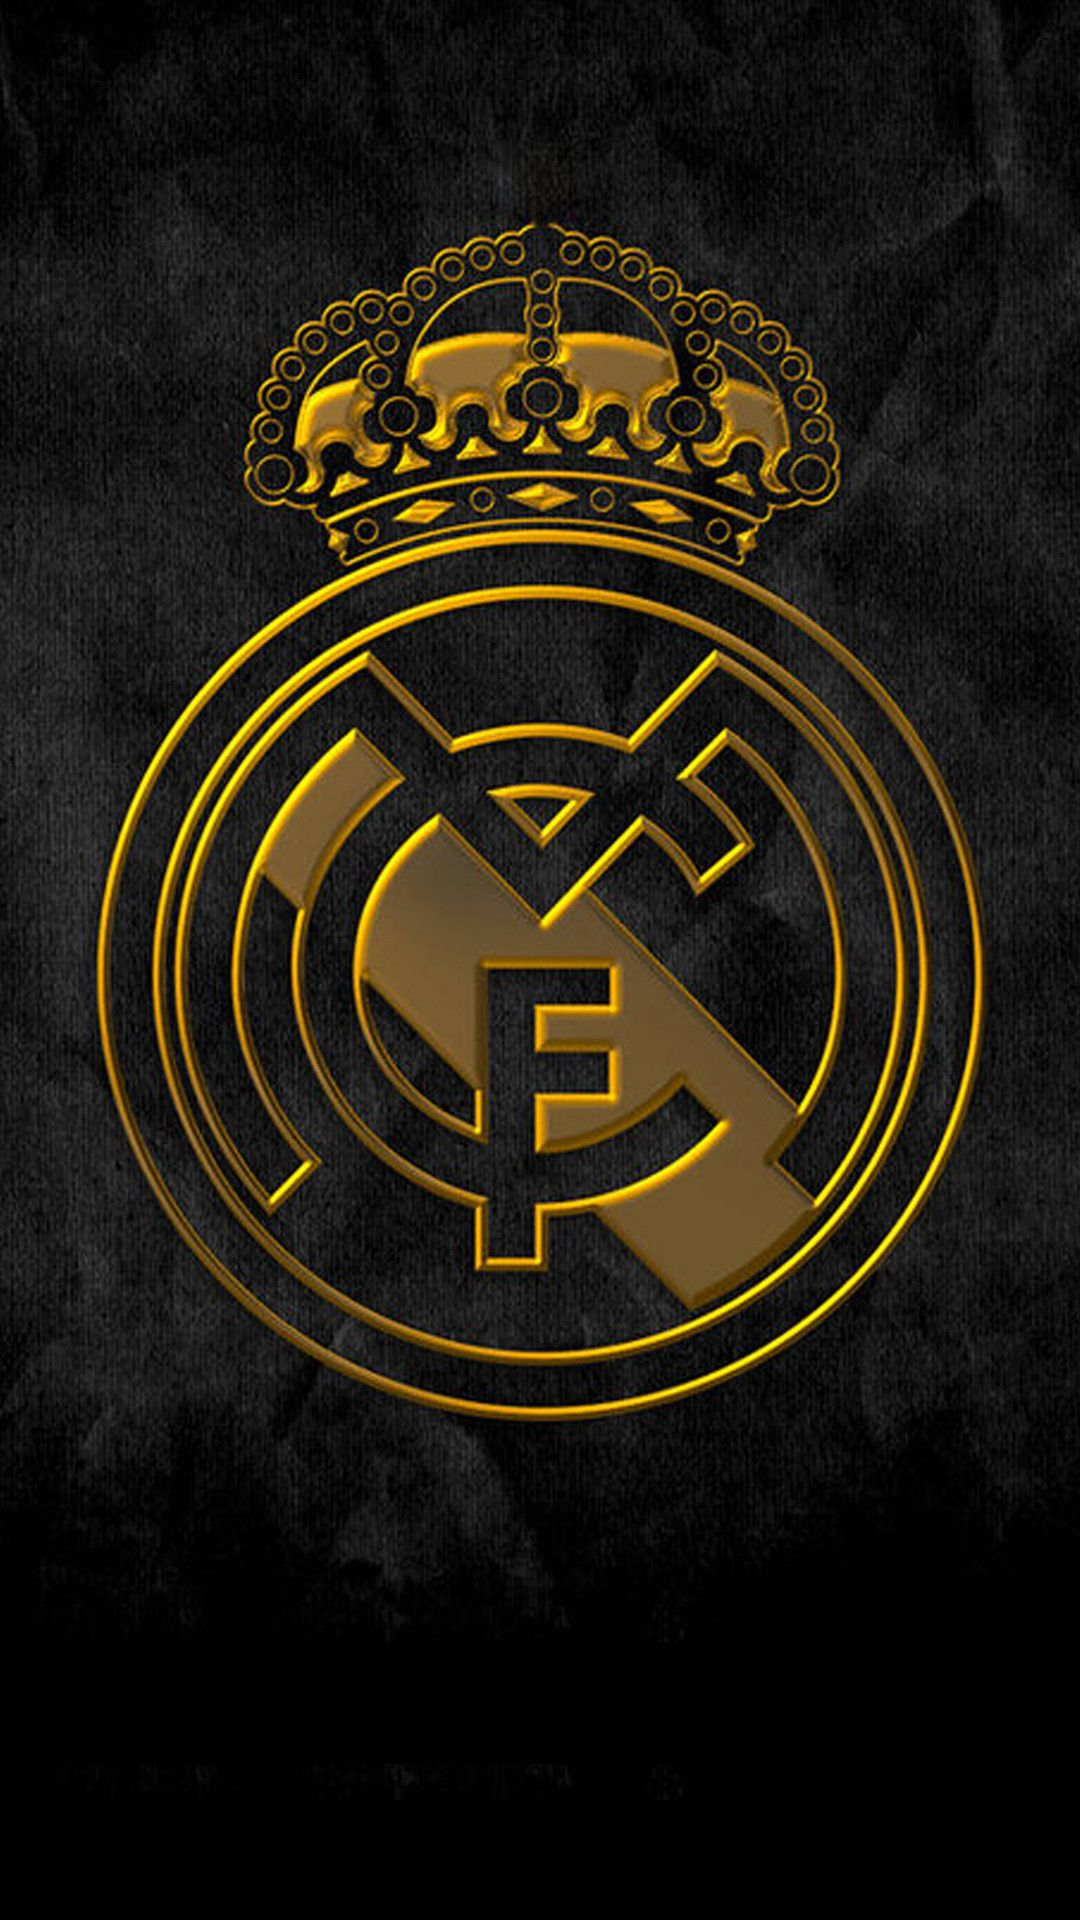 Champions League Real Madrid Phone Wallpaper In 2020 Madrid Wallpaper Real Madrid Wallpapers Real Madrid Logo